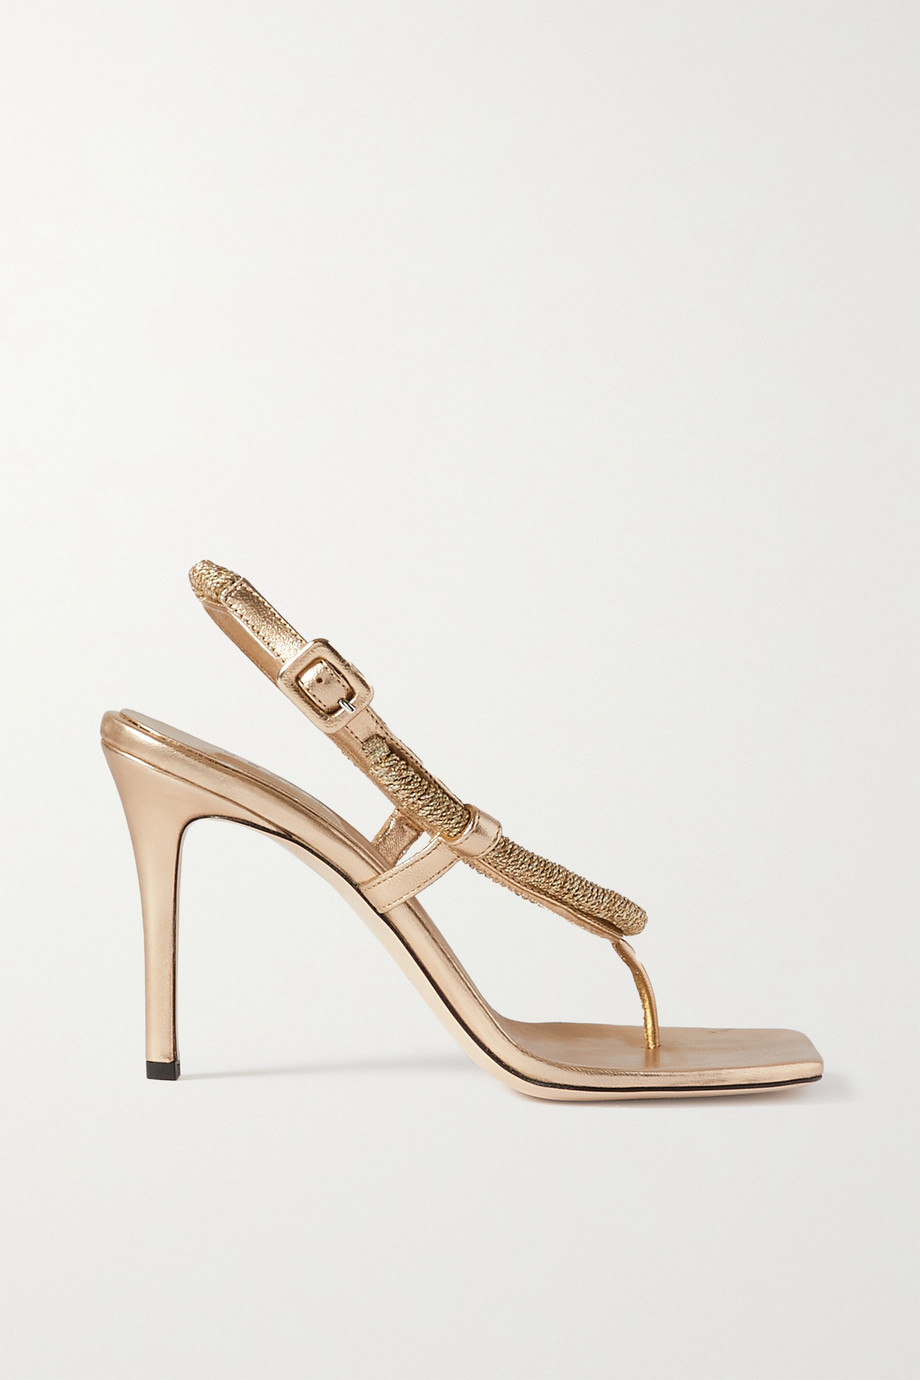 SERENA UZIYEL Iris metallic rope and faux leather sandals